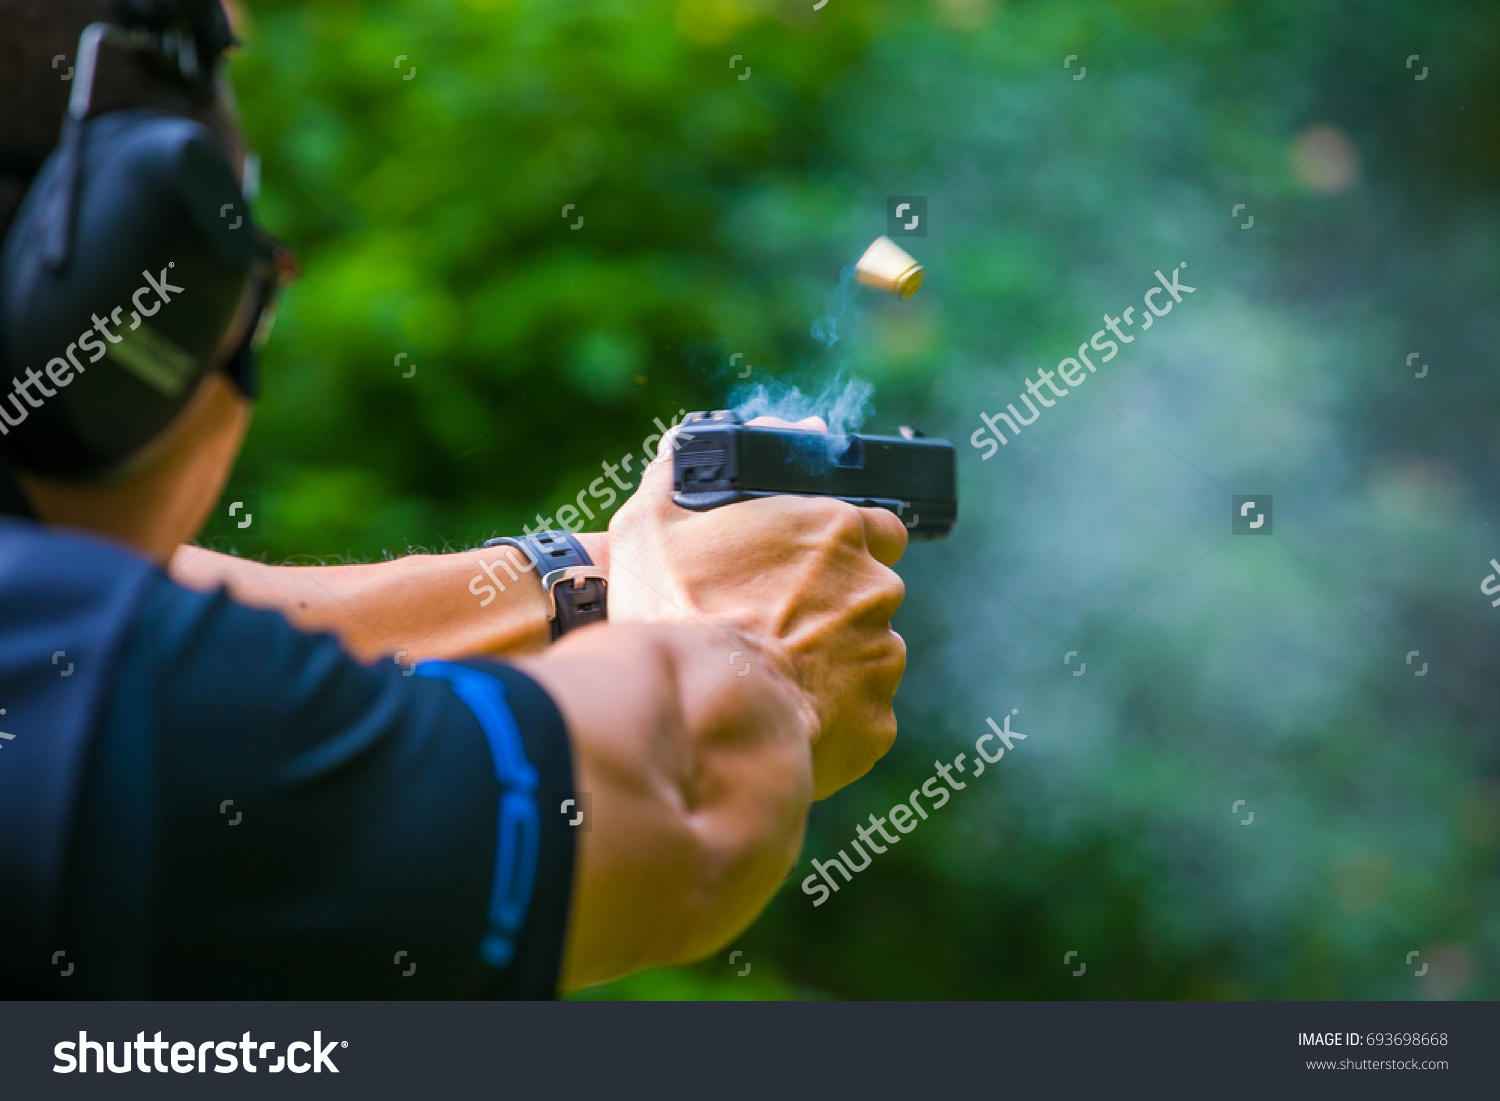 stock-photo-shooting-from-a-pistol-reloa